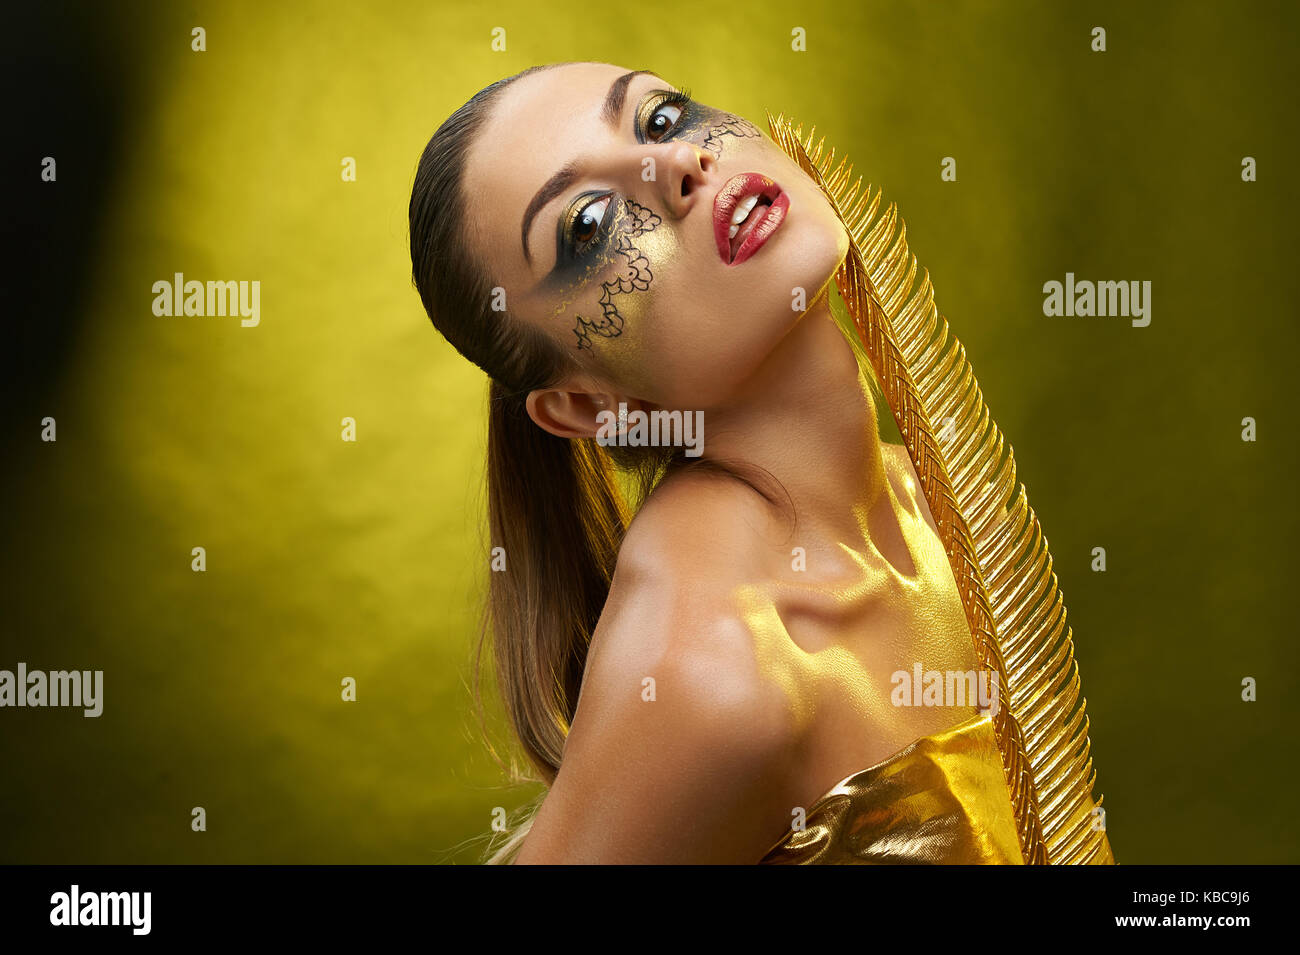 A beatiful girl with fantastic make-up - Stock Image